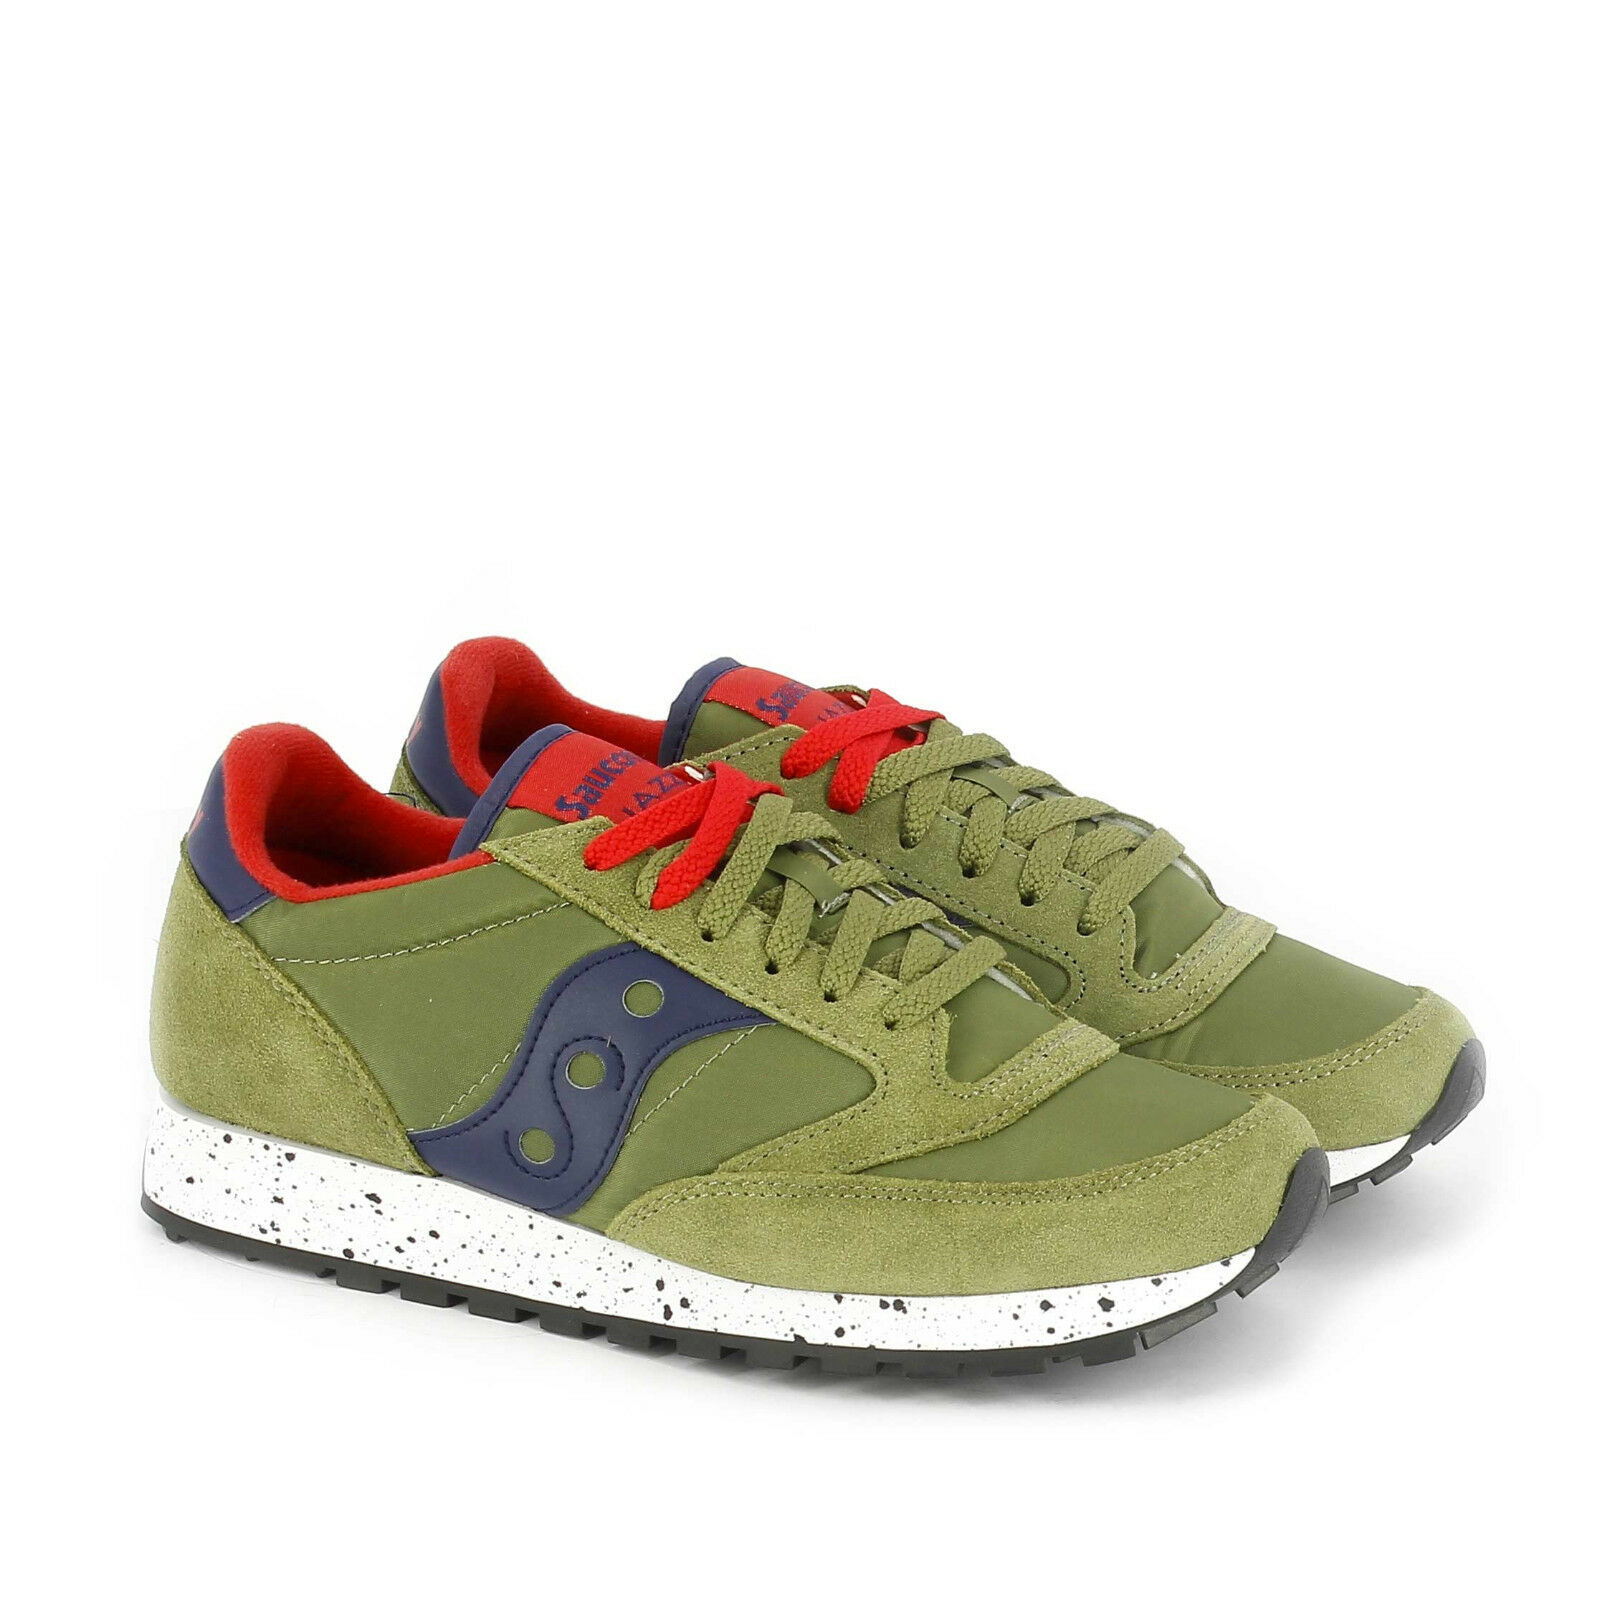 SCARPE GREEN SNEAKERS SAUCONY JAZZ UOMO GREEN SCARPE - BLUE  ART. 2044-459 5bbac0